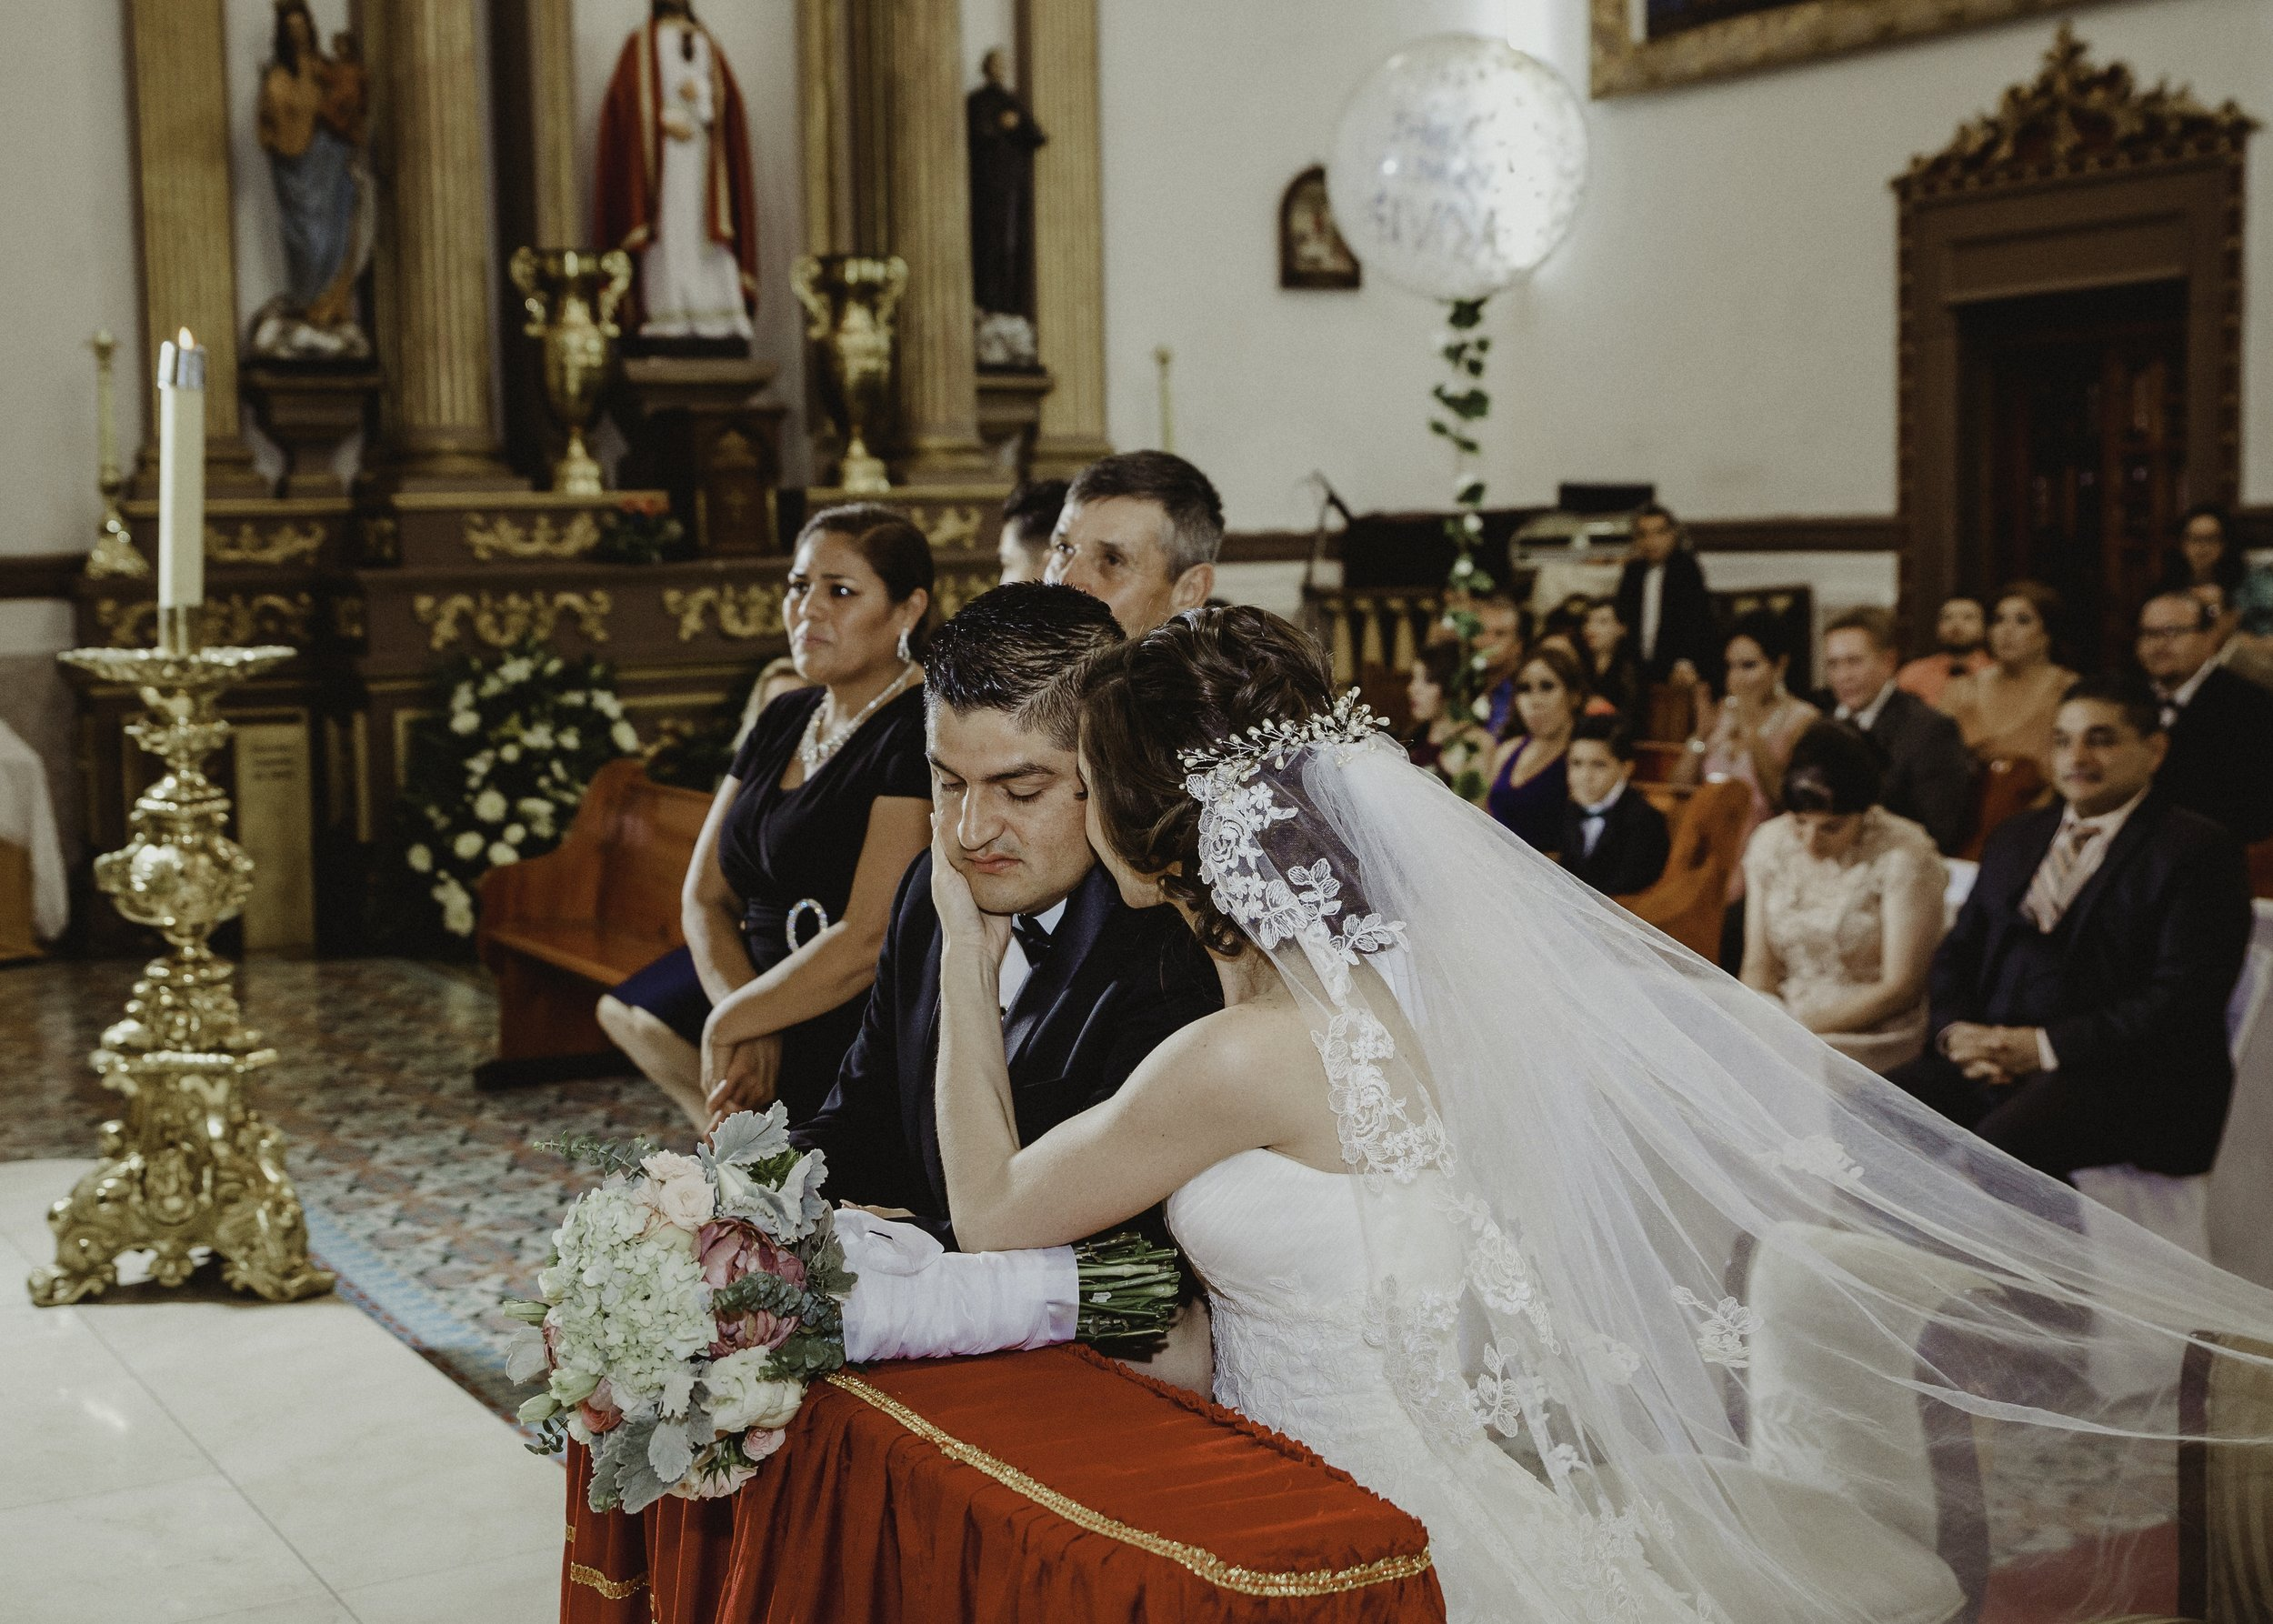 ODEMARIS_DANIEL-57carotida_photographer_boda_wedding.jpg